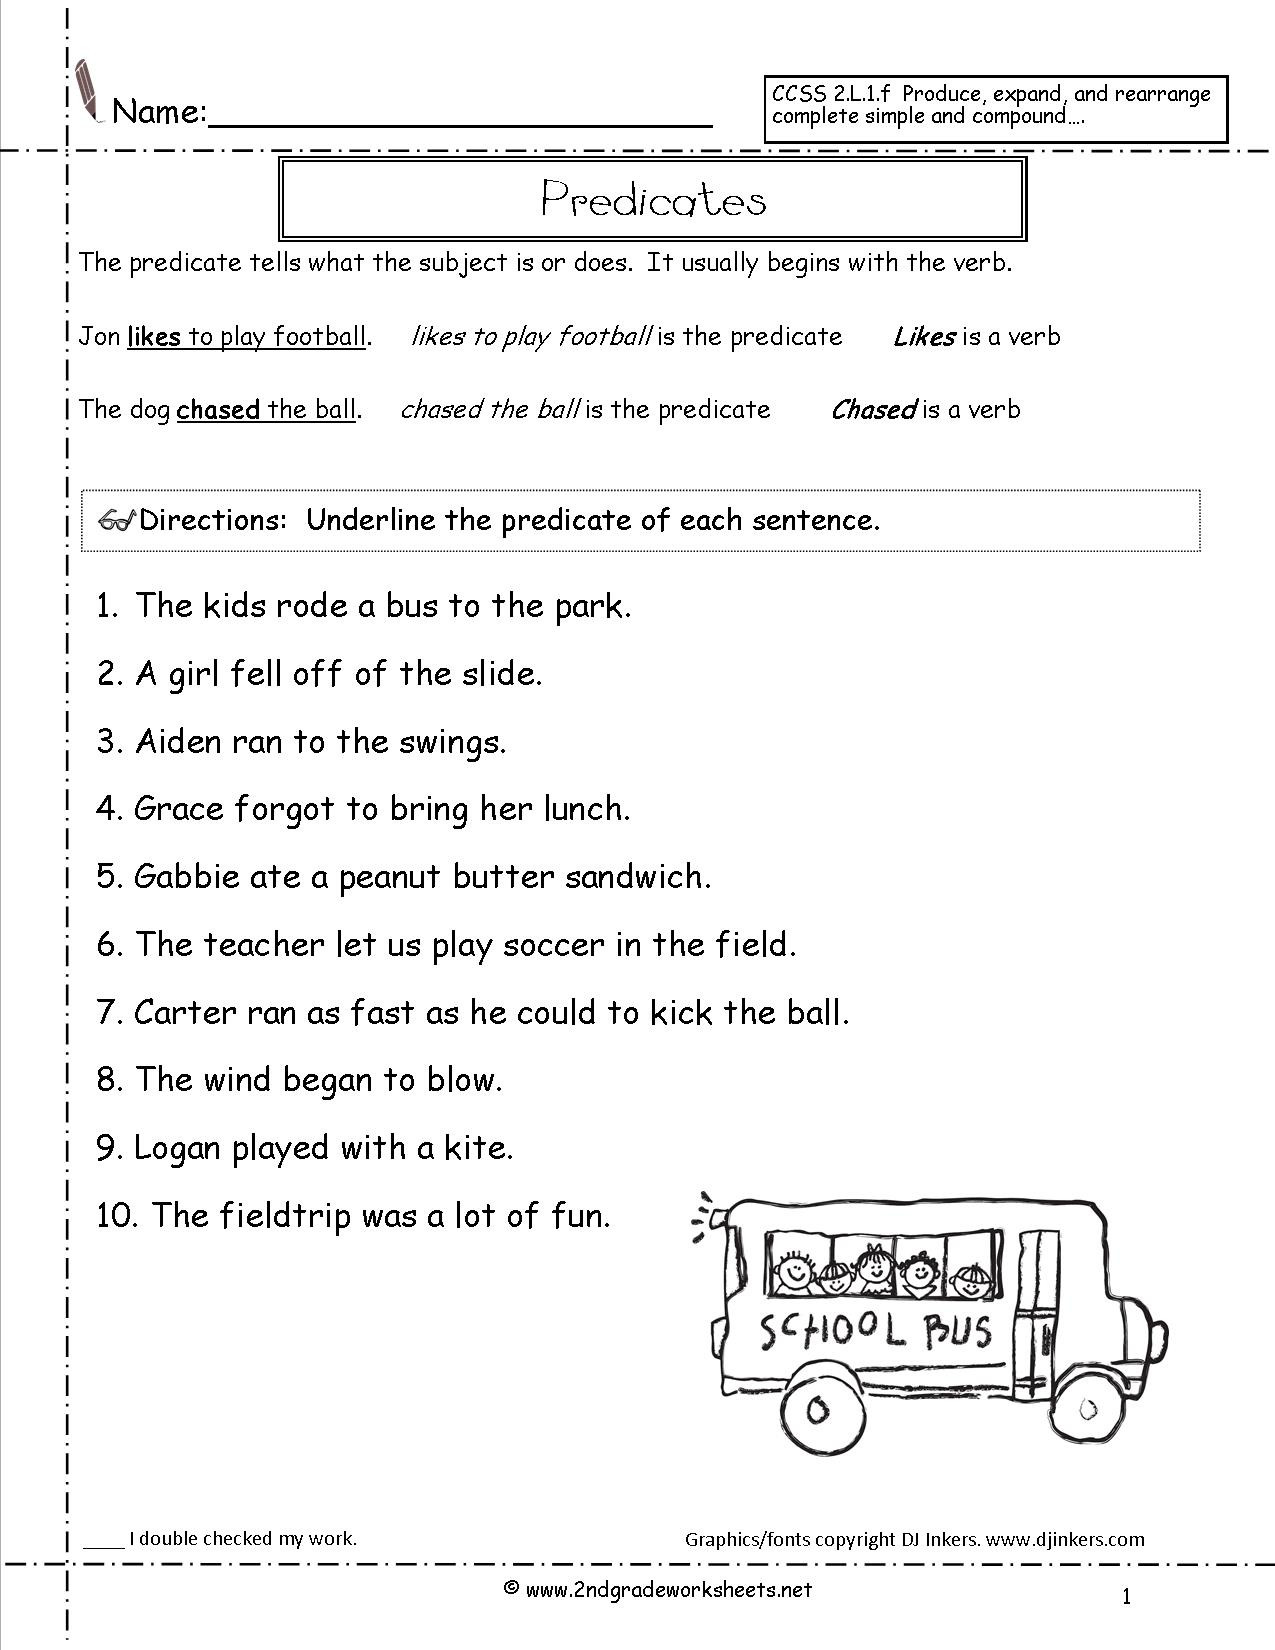 Subject Worksheets 3rd Grade Second Grade Sentences Worksheets Ccss 2 L 1 F Worksheets